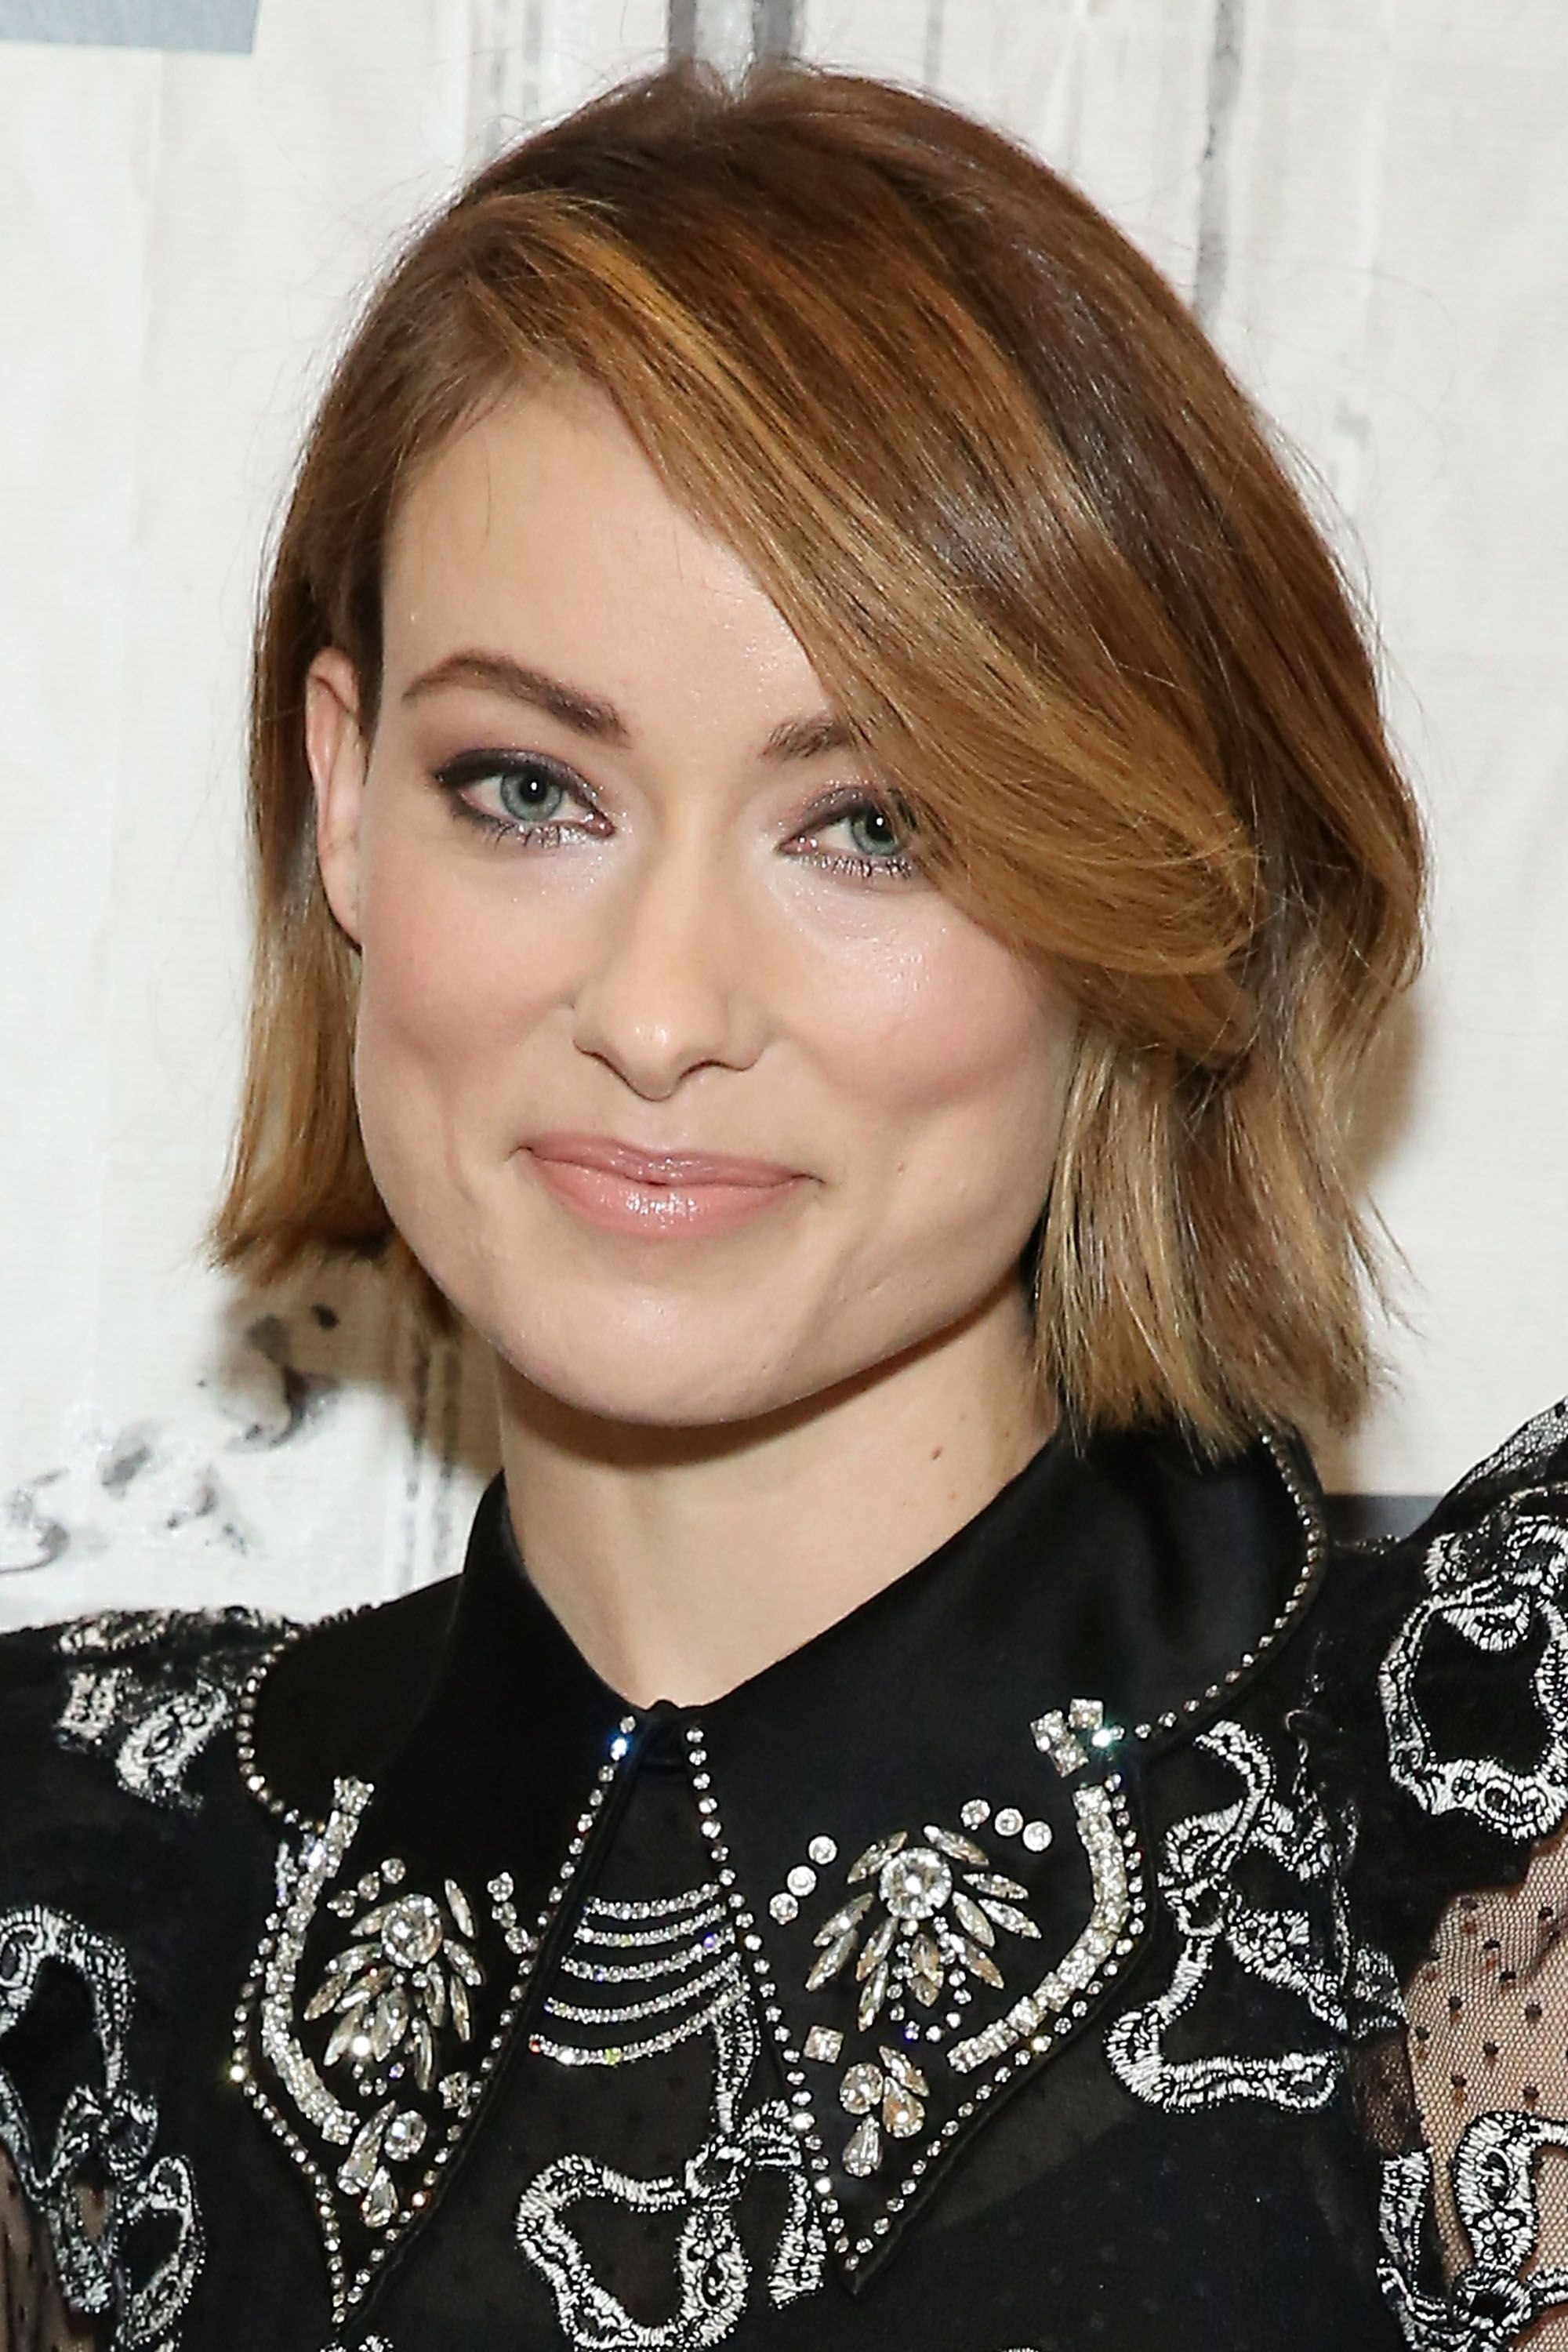 The 7 Best Hairstyles For Square Face Shapes In Short Haircuts For Square Face (View 22 of 25)